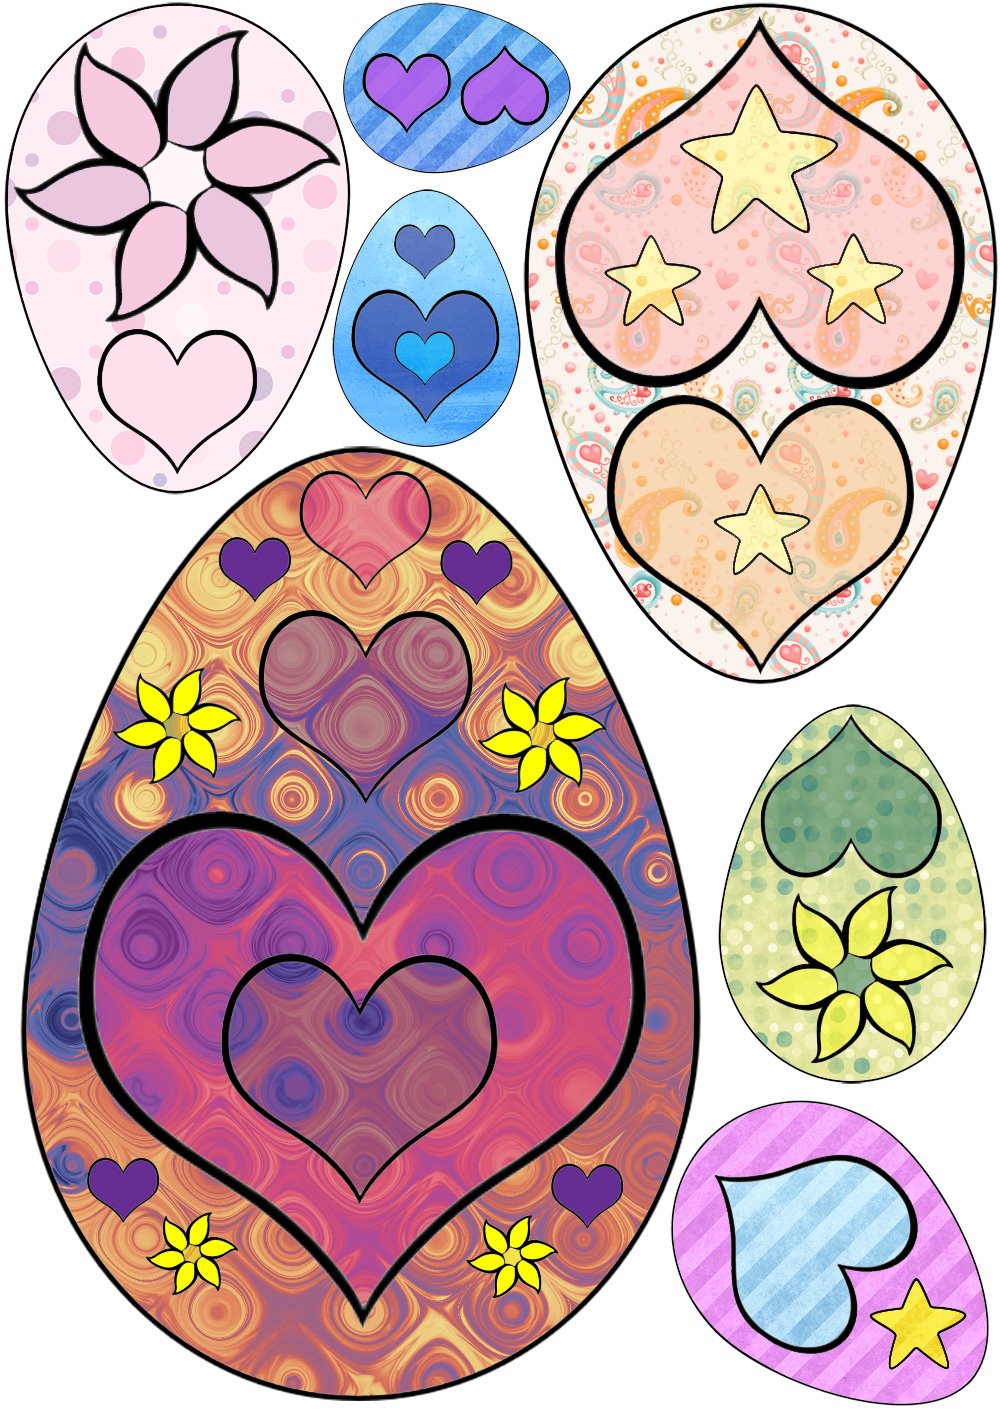 Easter eggs with a heart design, useful for Easter crafts.